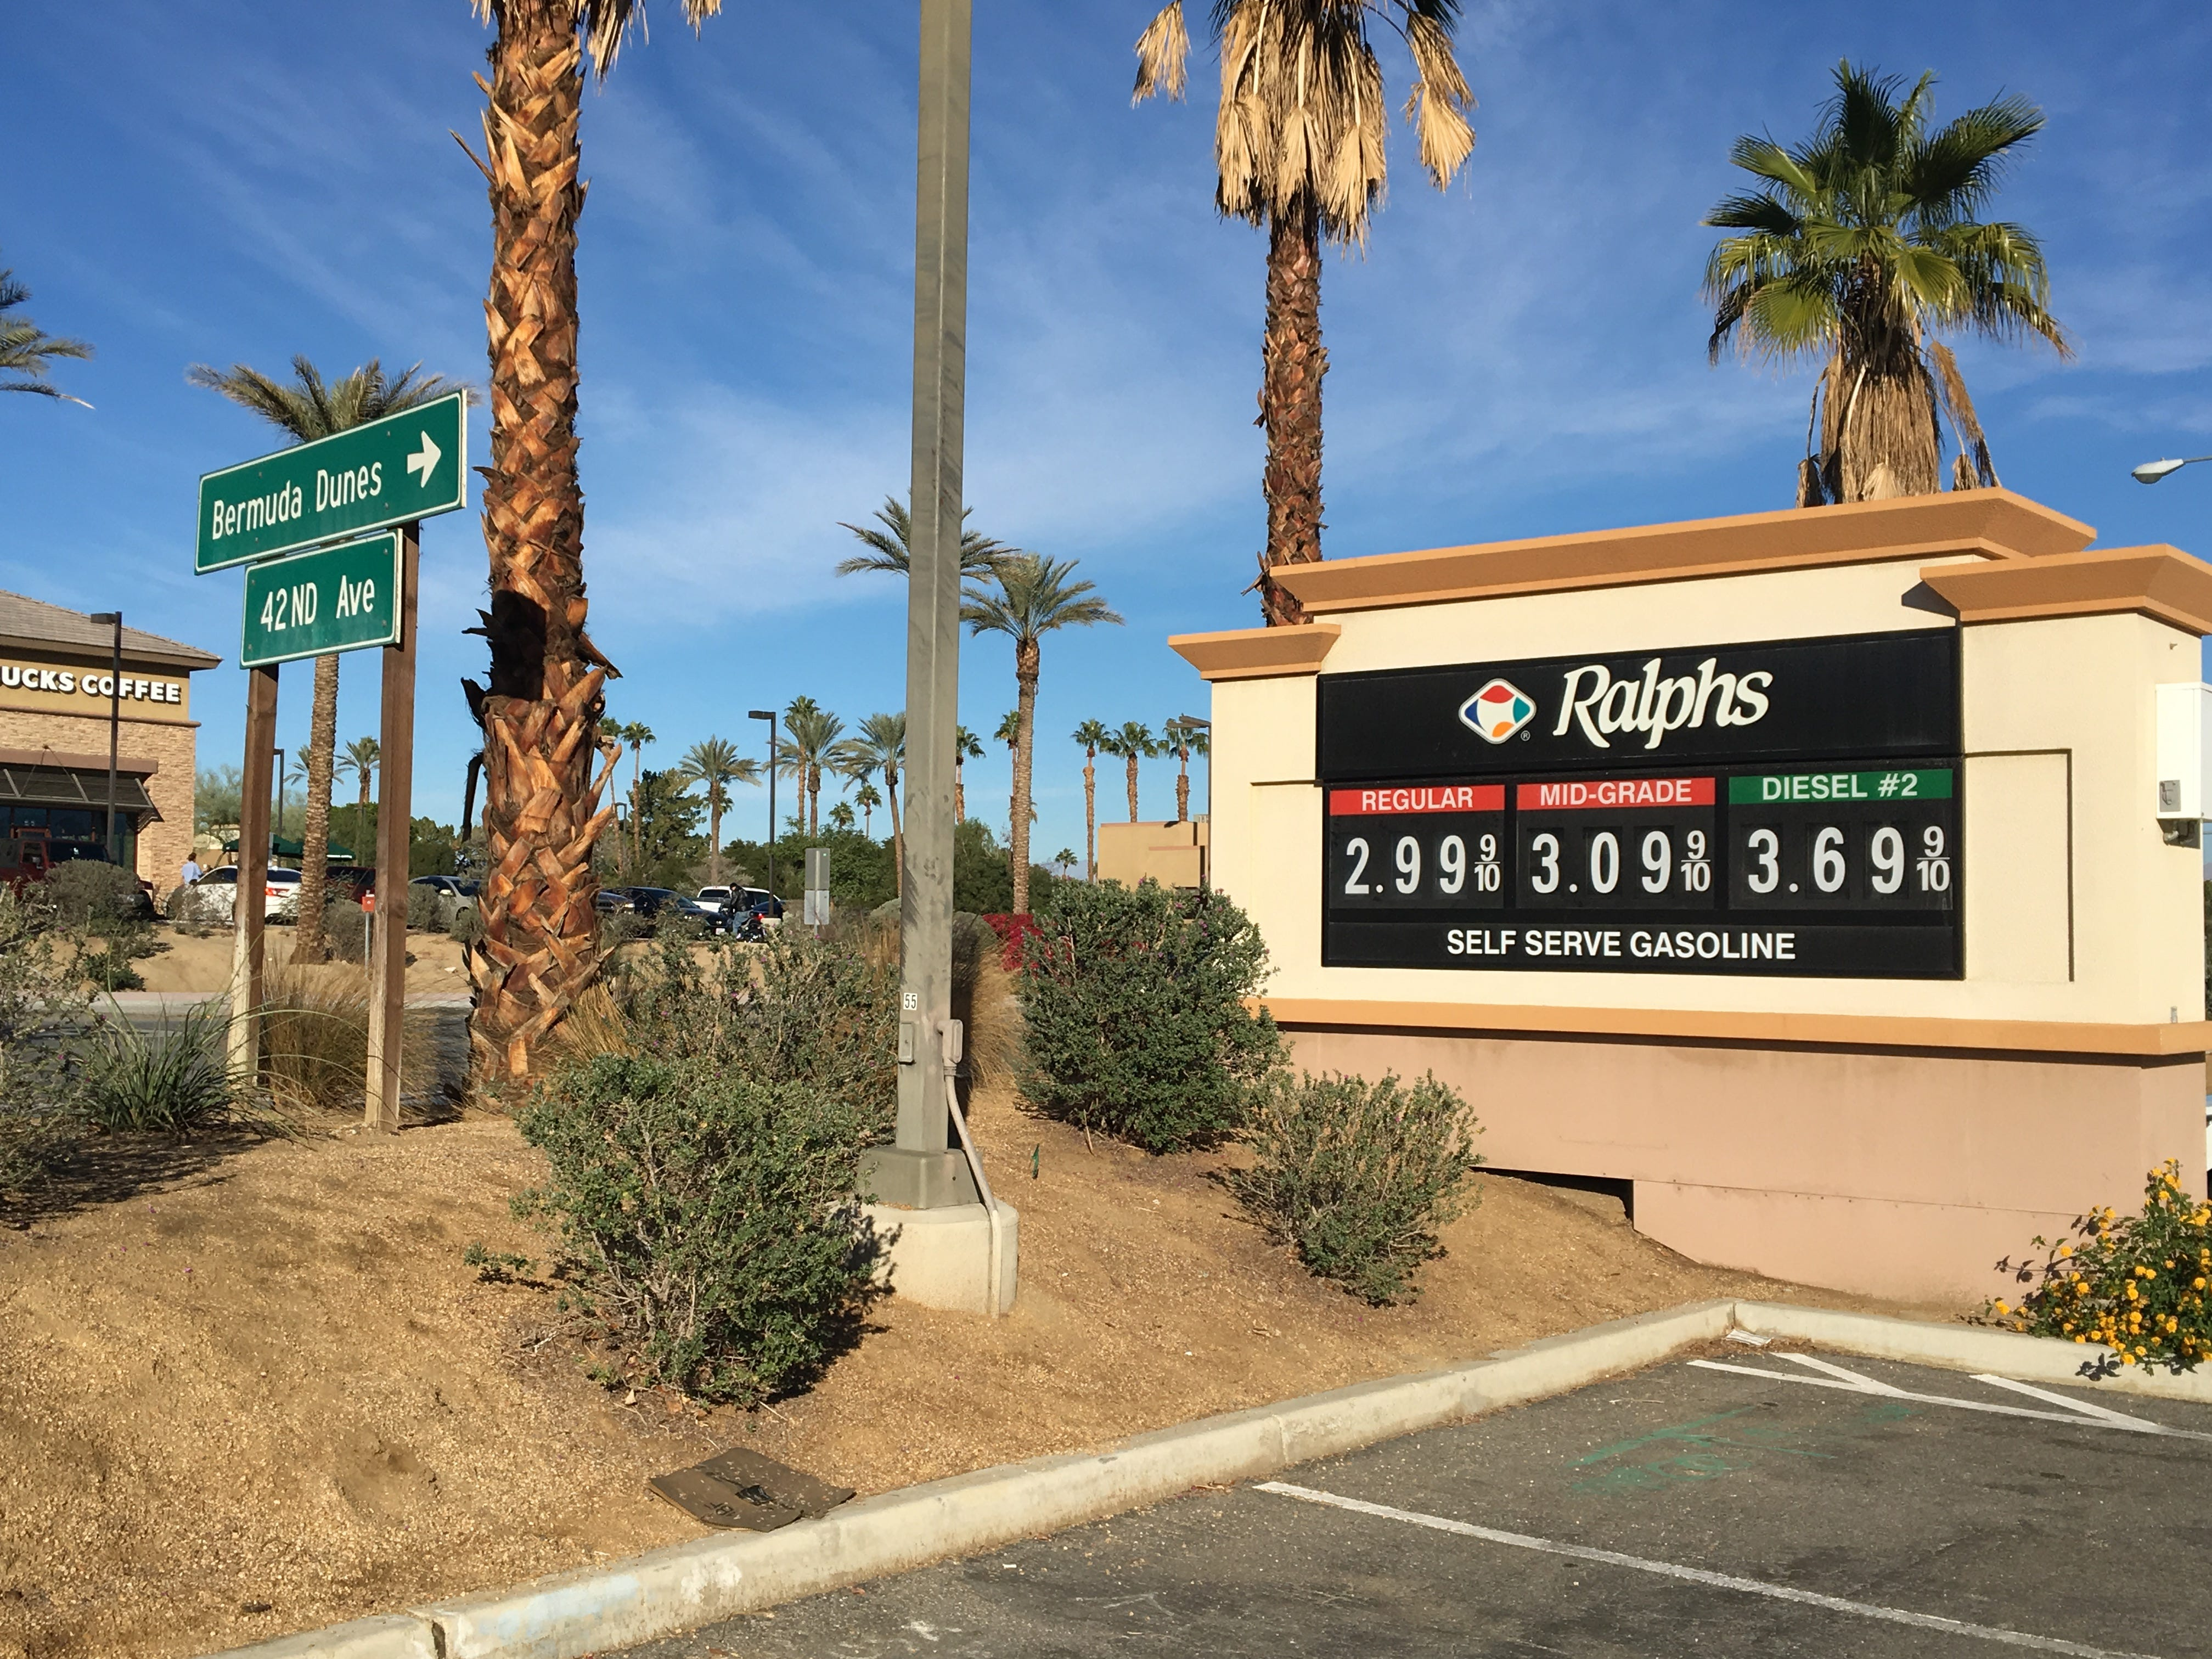 Coachella Valley drivers, here's where you can pay $2.99 for a gallon of gasoline